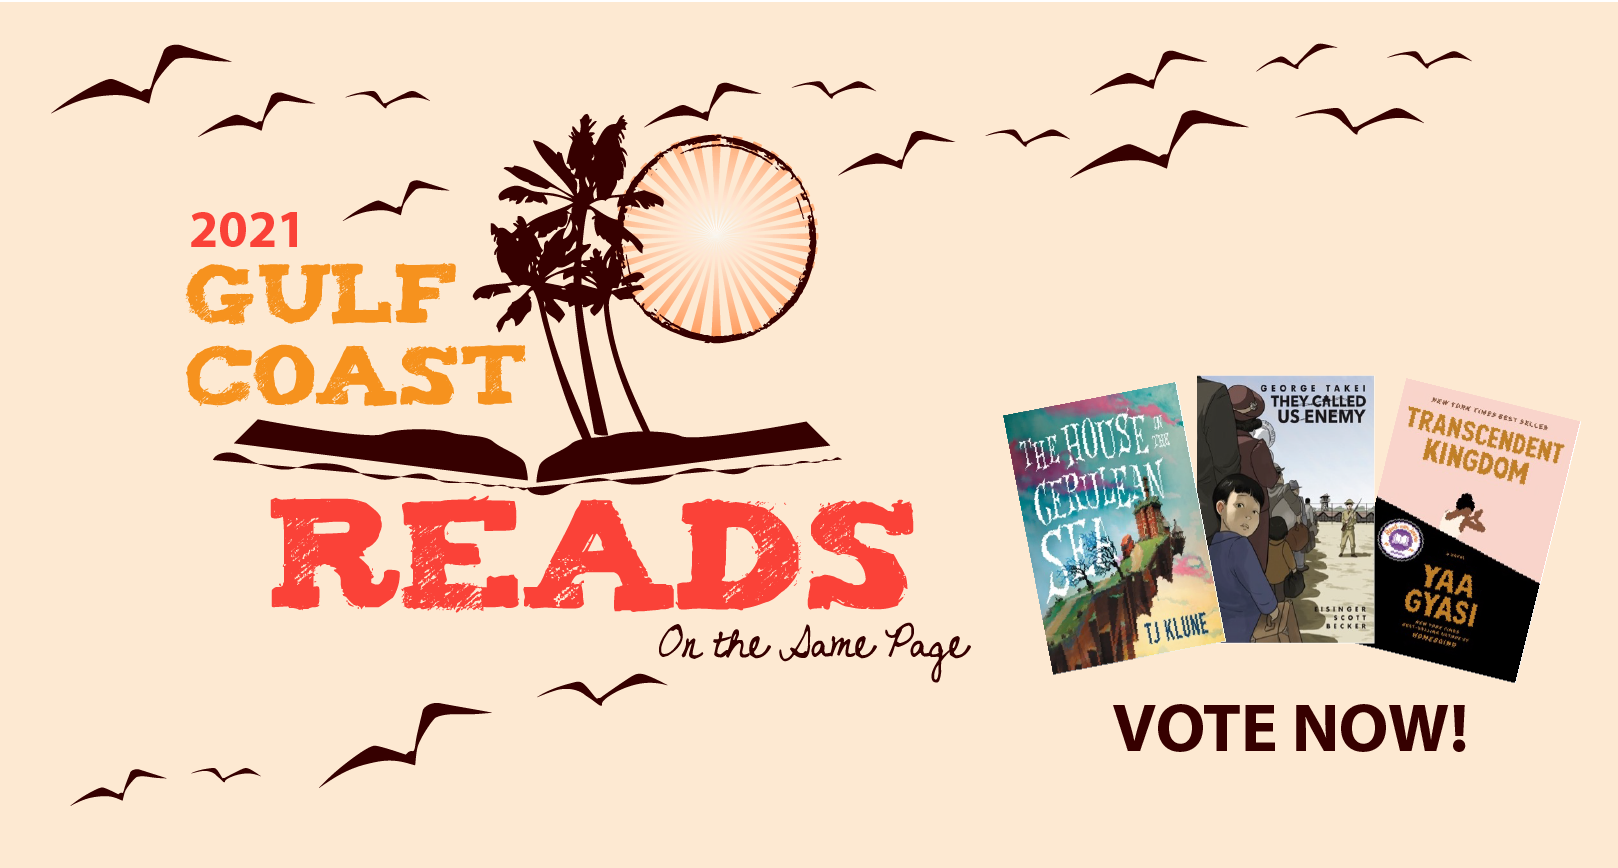 Gulf Coast Reads Graphic with Palm Trees, Sun and Seagulls along with book covers of finalists